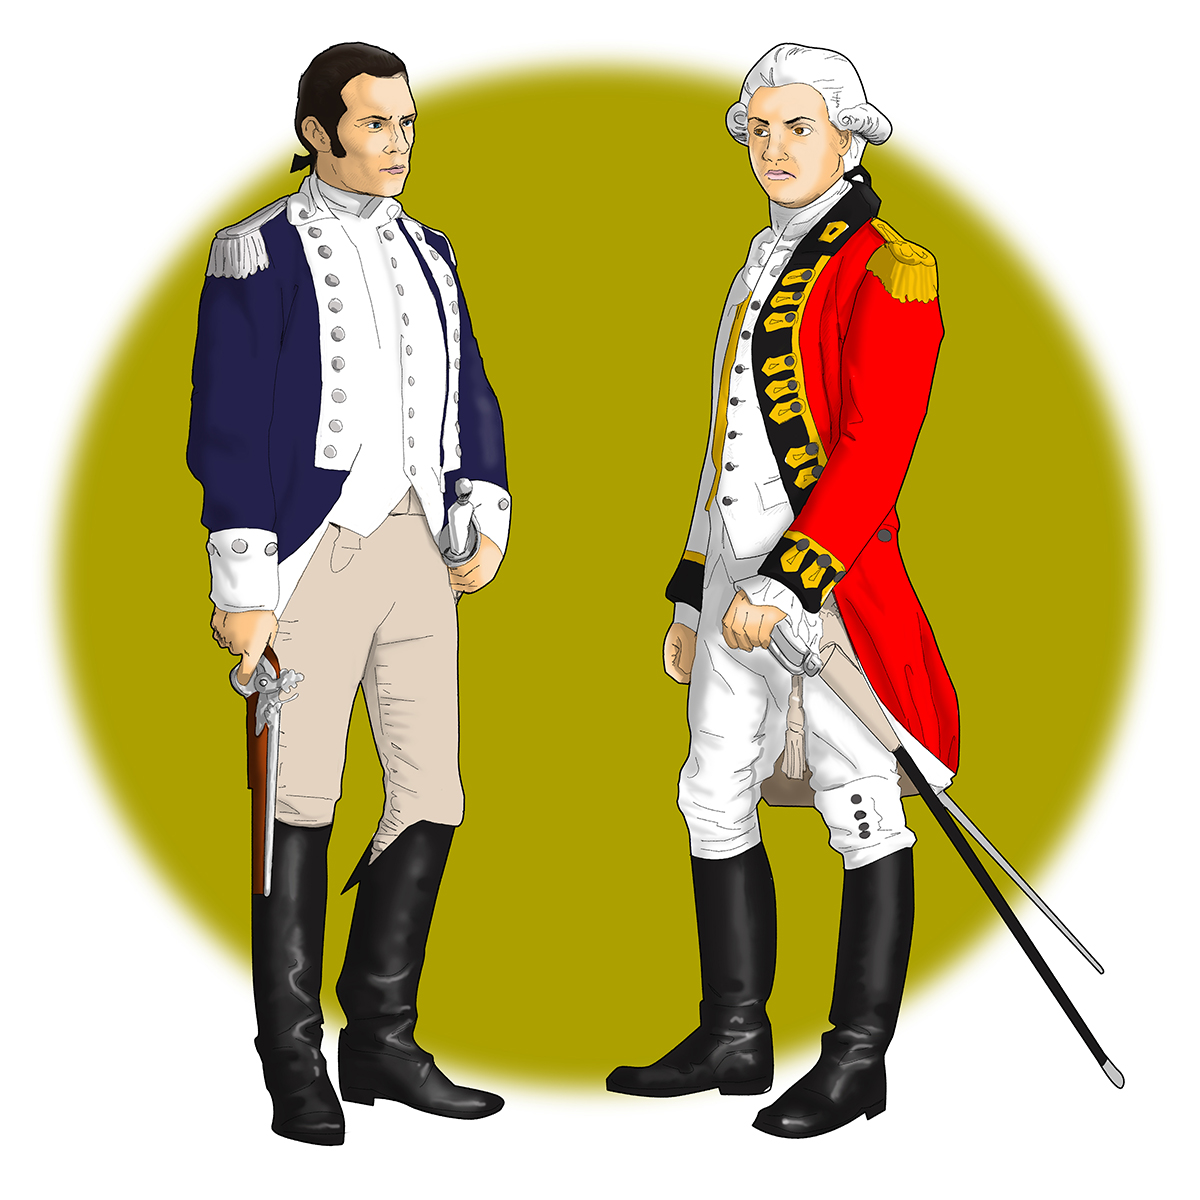 Culper Spy Ring